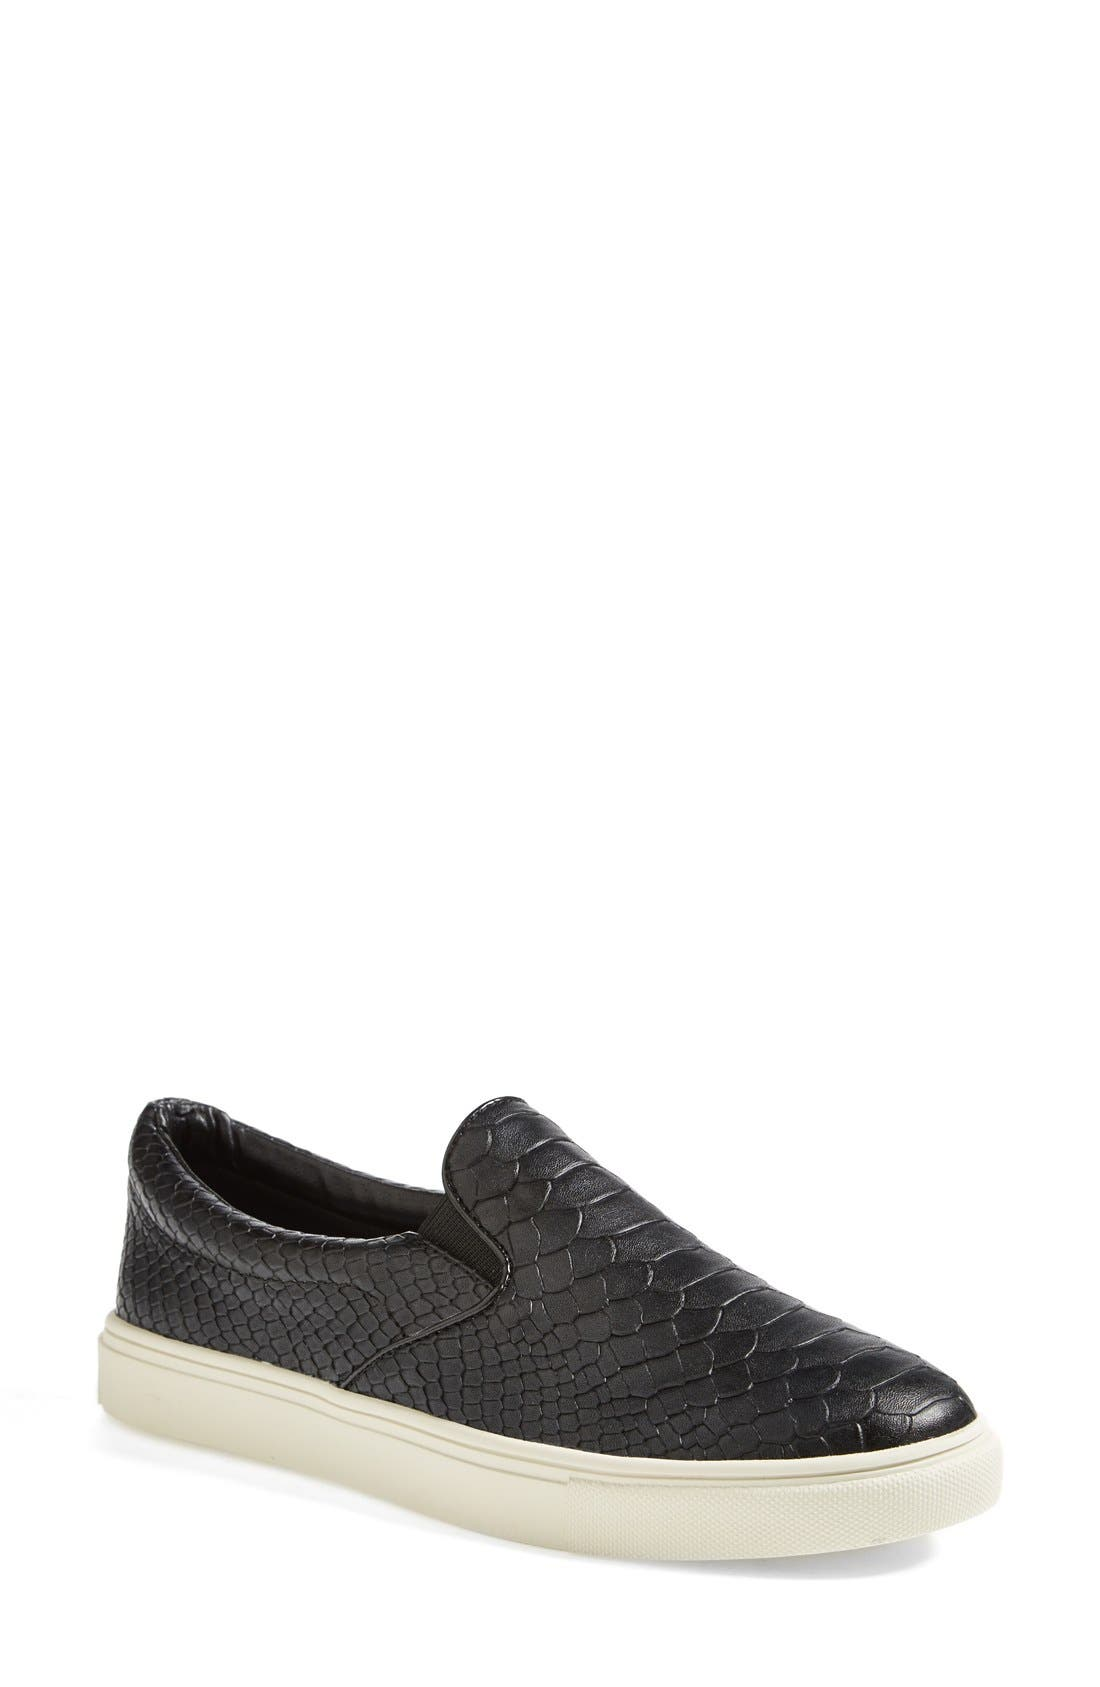 Alternate Image 1 Selected - Steve Madden 'Ecntrc-c' Snake-Embossed Slip-On Sneaker (Women)